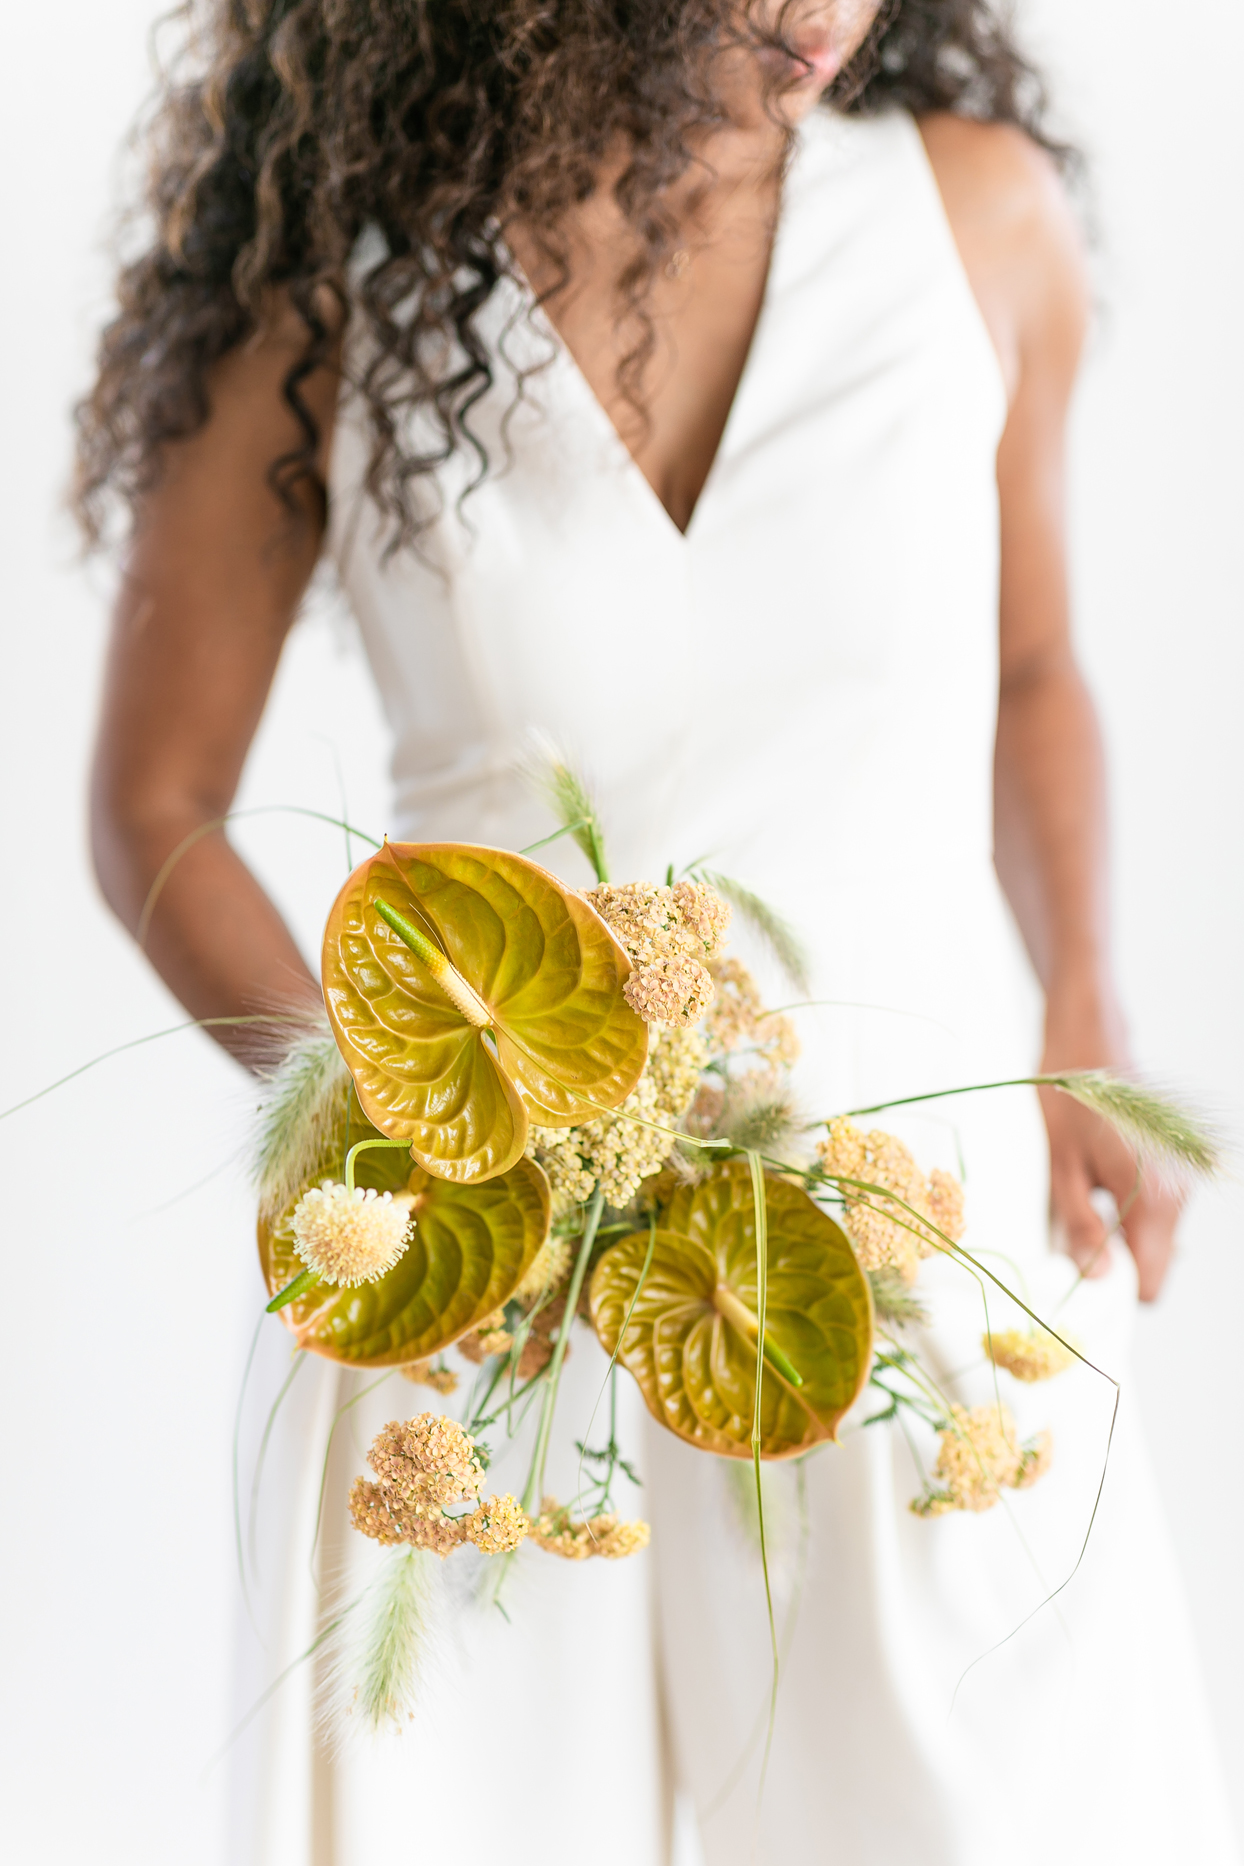 bridal bouquet of greenish-gold anthurium lilies and soft ferns